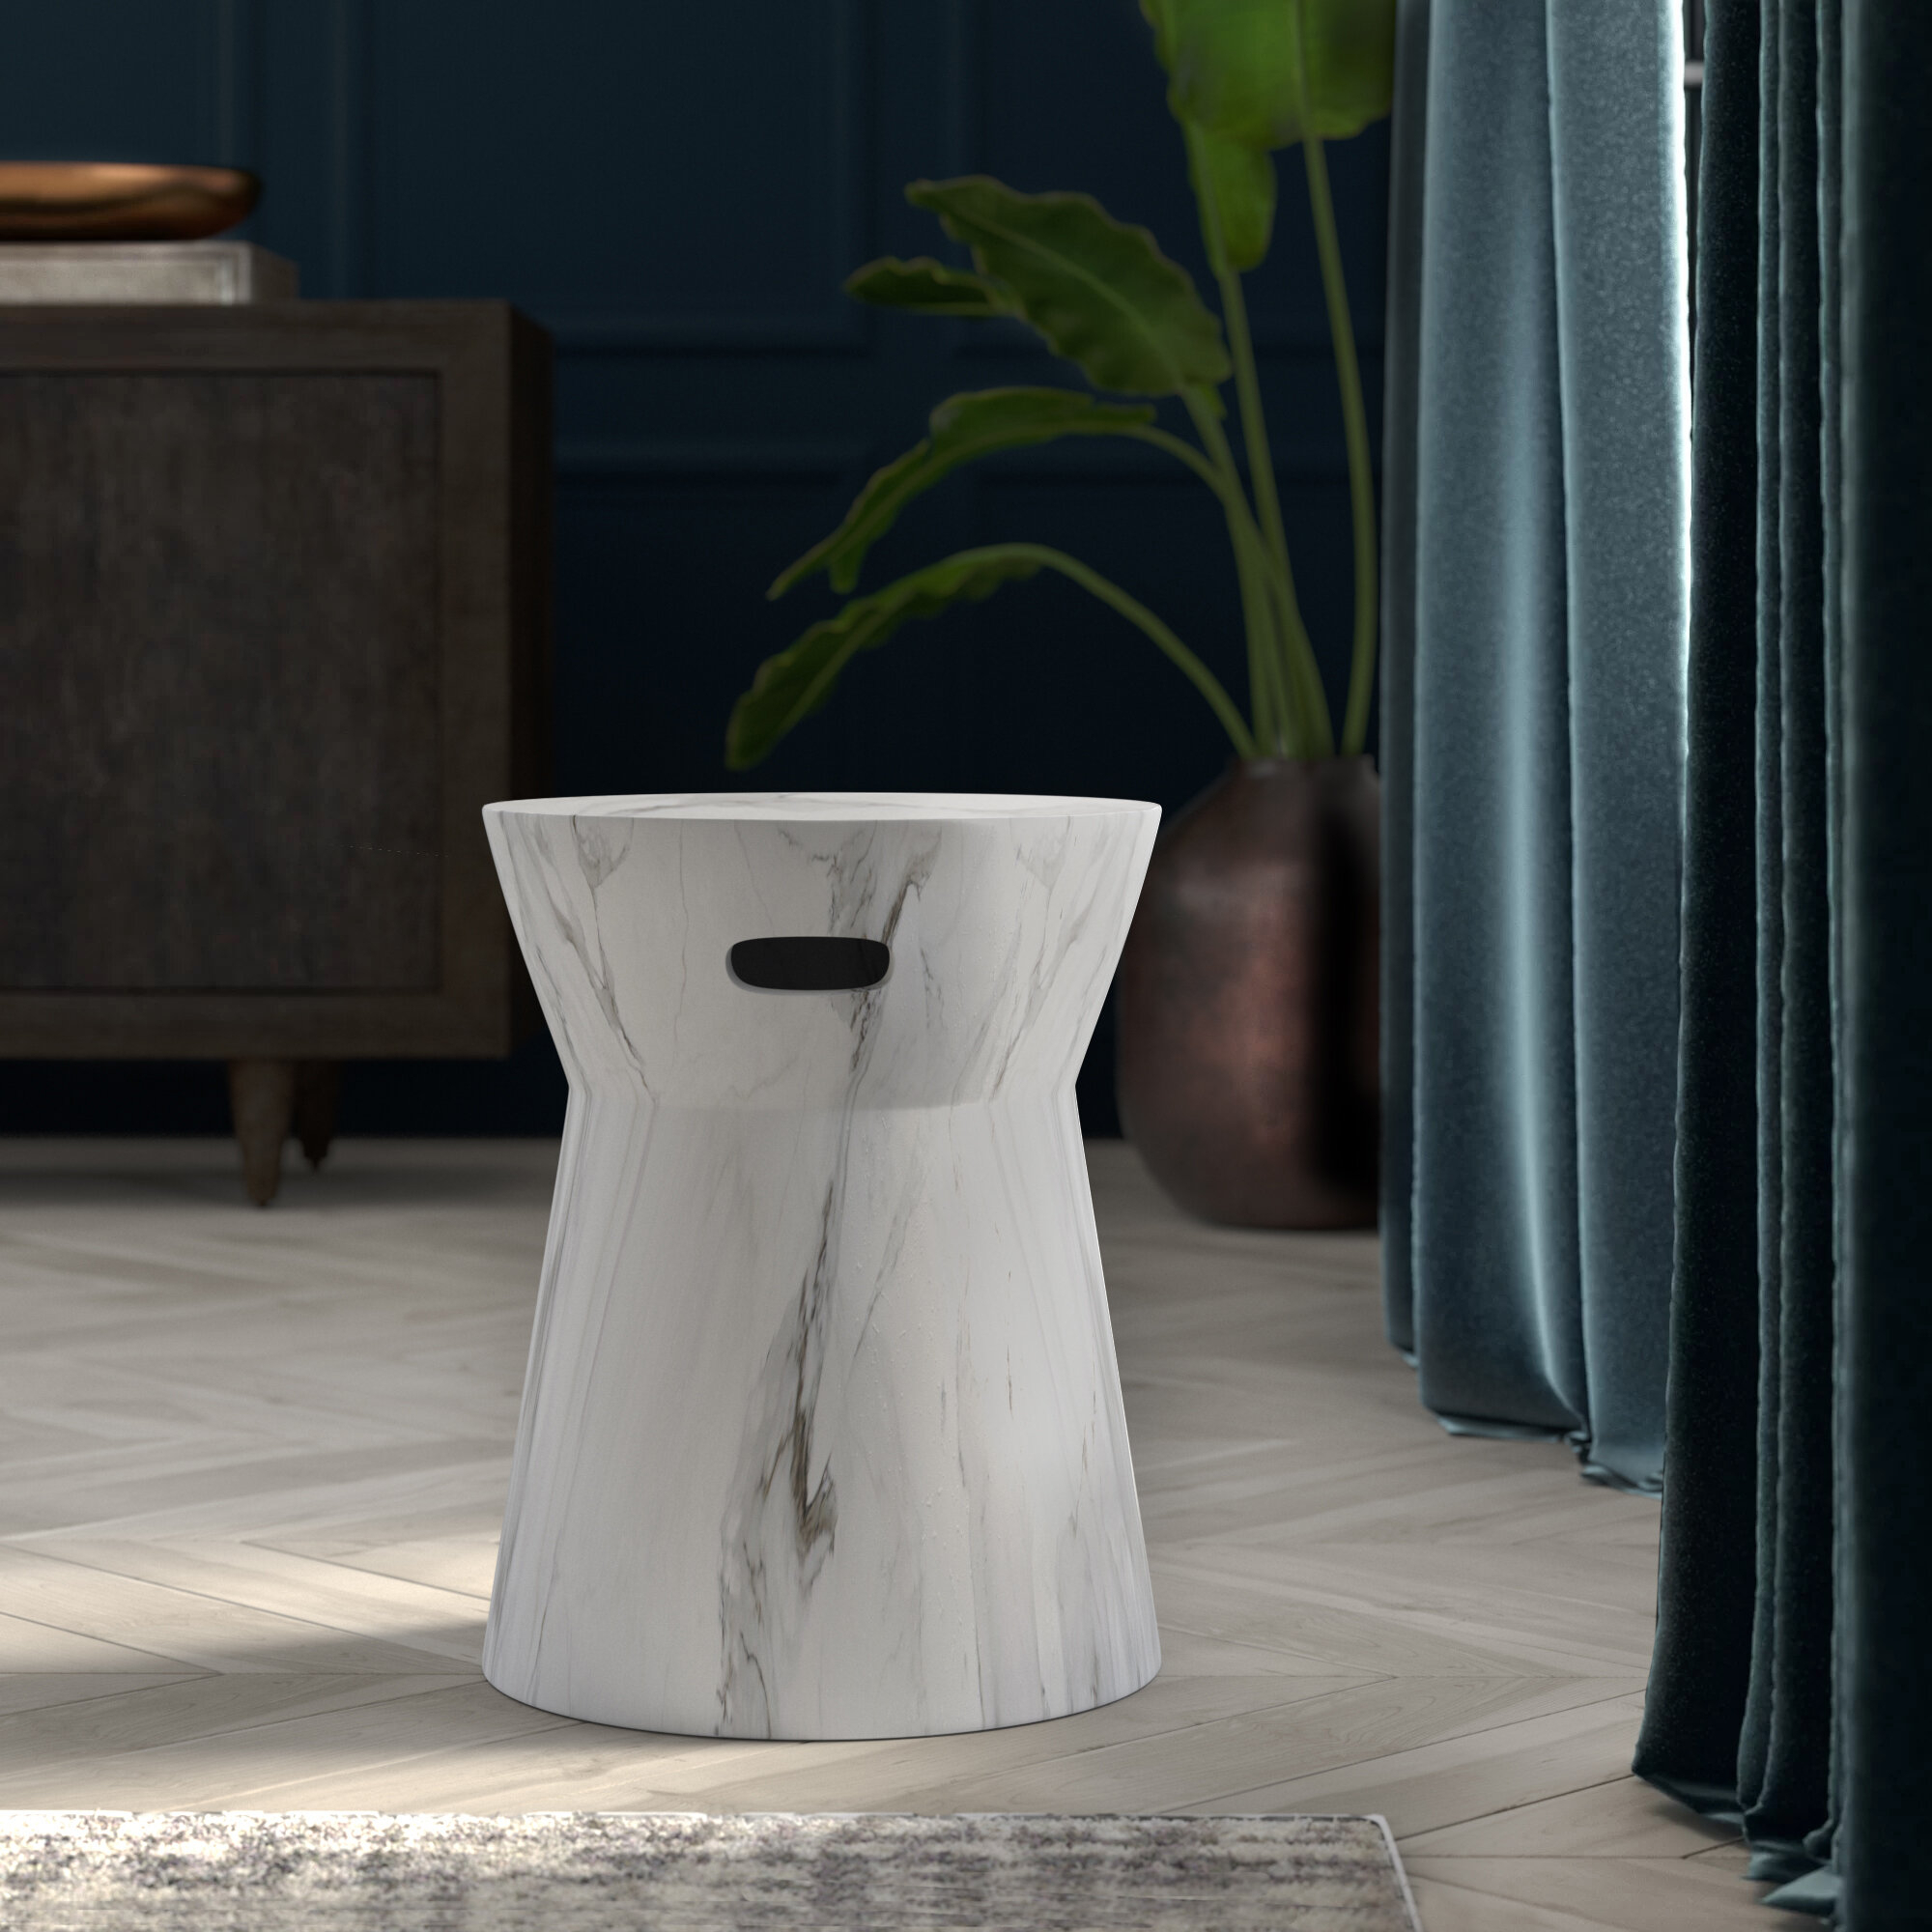 Westminster Ceramic Garden Stool With Regard To Svendsen Ceramic Garden Stools (View 10 of 25)